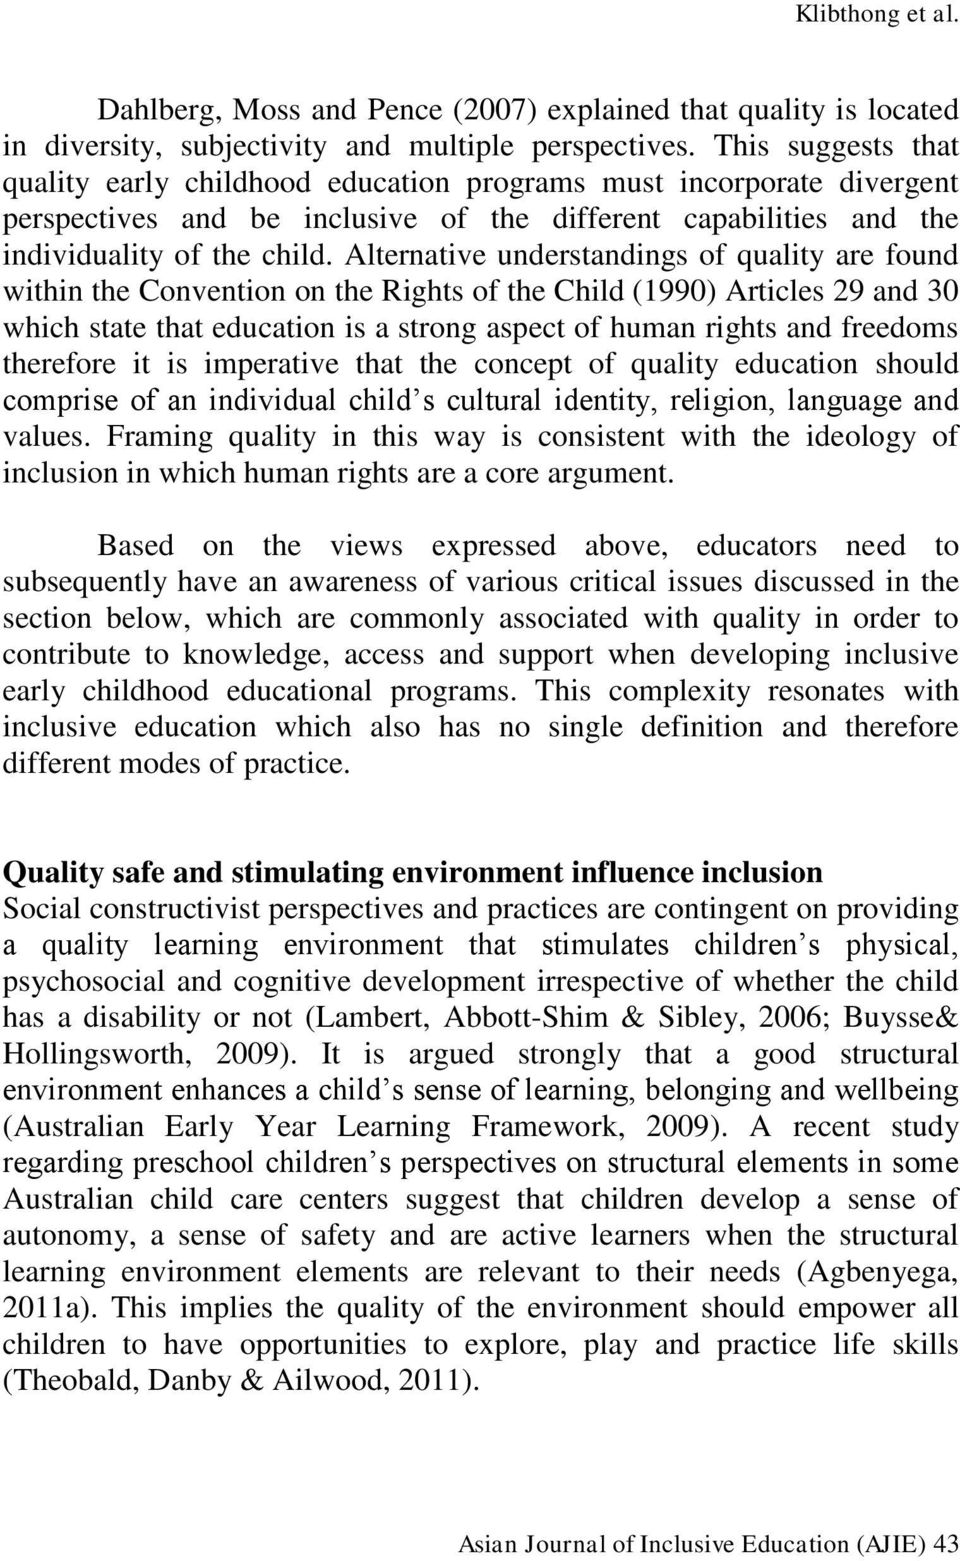 Alternative understandings of quality are found within the Convention on the Rights of the Child (1990) Articles 29 and 30 which state that education is a strong aspect of human rights and freedoms